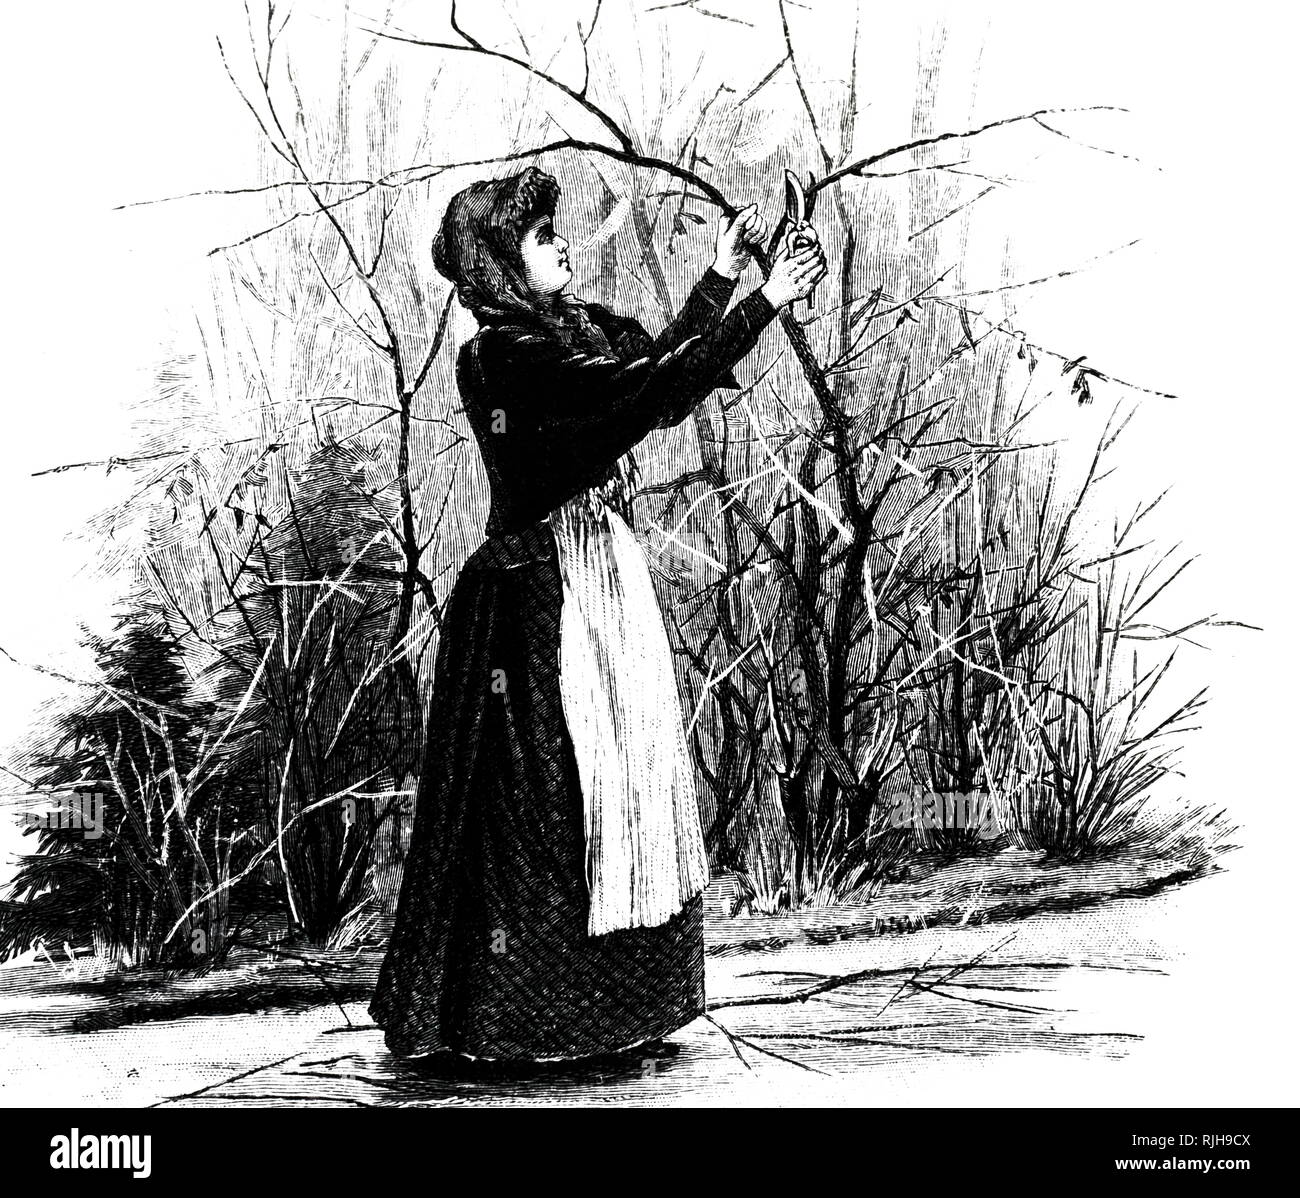 An engraving depicting a female gardener pruning. At this date, establishments were being set up in France, Germany and Britain to give women sound training which would enable them to earn a living as market gardeners or as gardeners in private employment. Dated 19th century - Stock Image